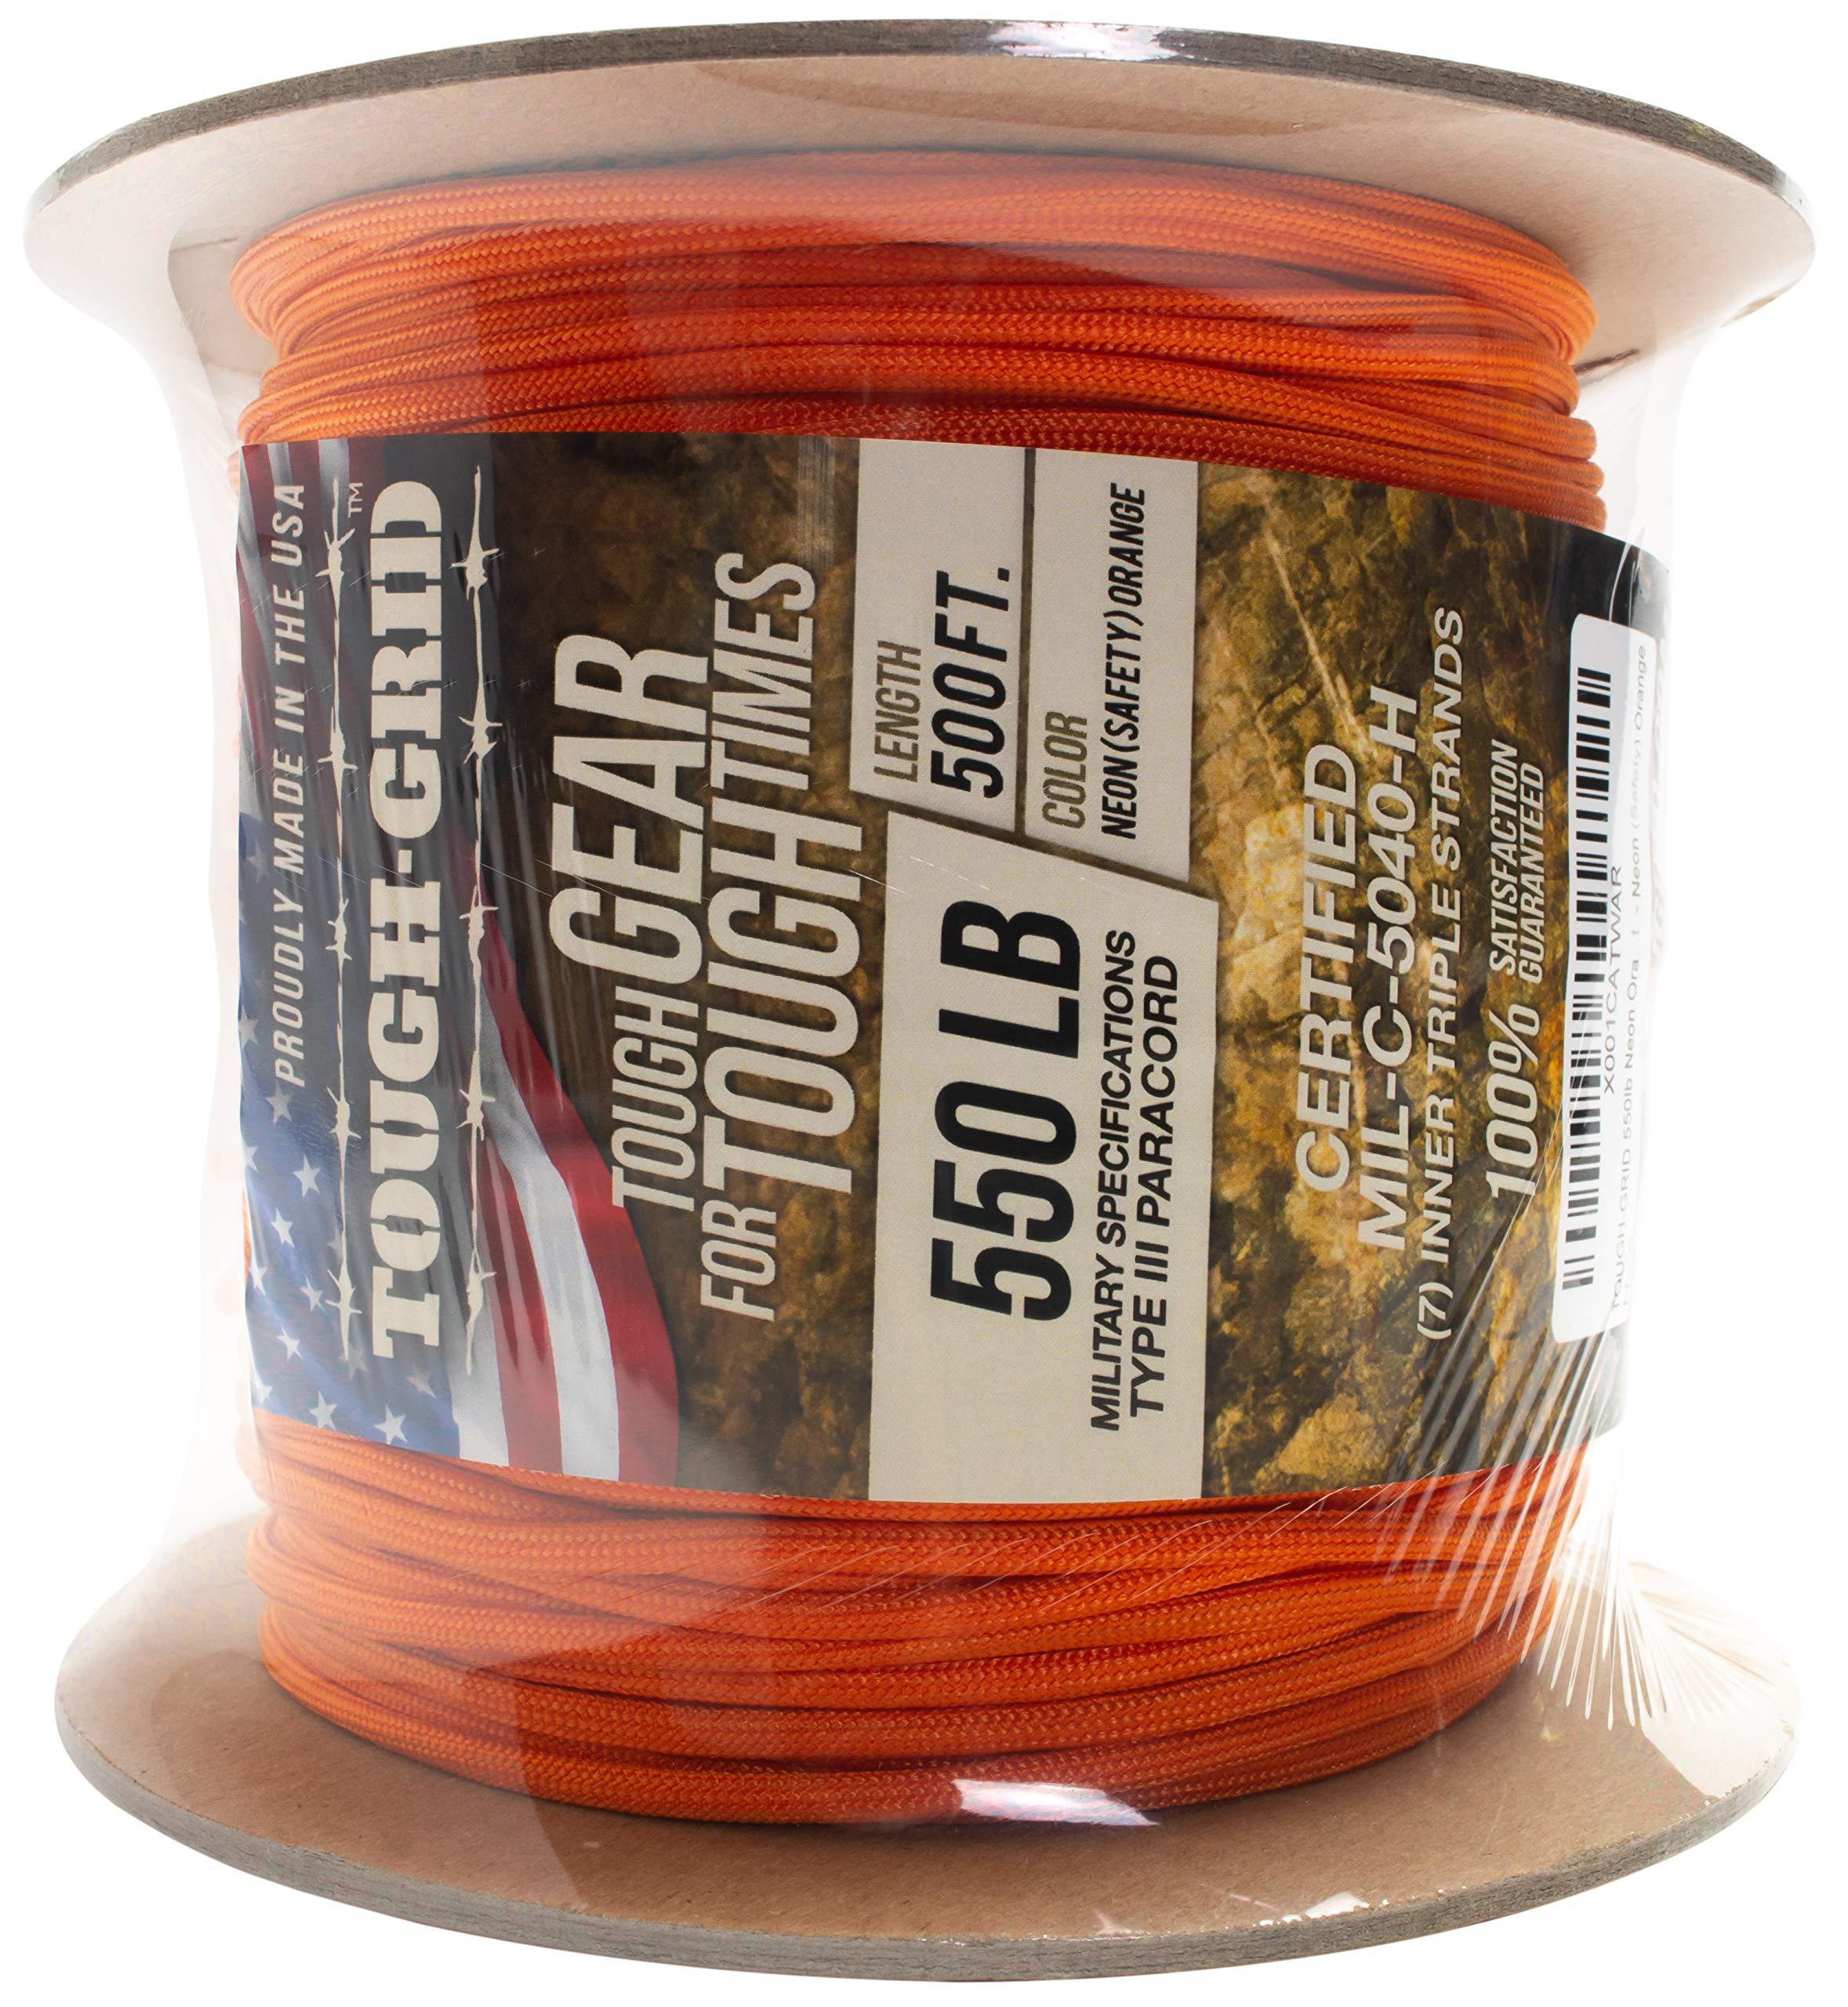 TOUGH-GRID 550lb Neon (Safety) Orange Paracord/Parachute Cord - Genuine Mil Spec Type III 550lb Paracord Used by US Military (MIl-C-5040-H) - 100% Nylon - Made in USA. 100Ft. - Neon (Safety) Orange by TOUGH-GRID